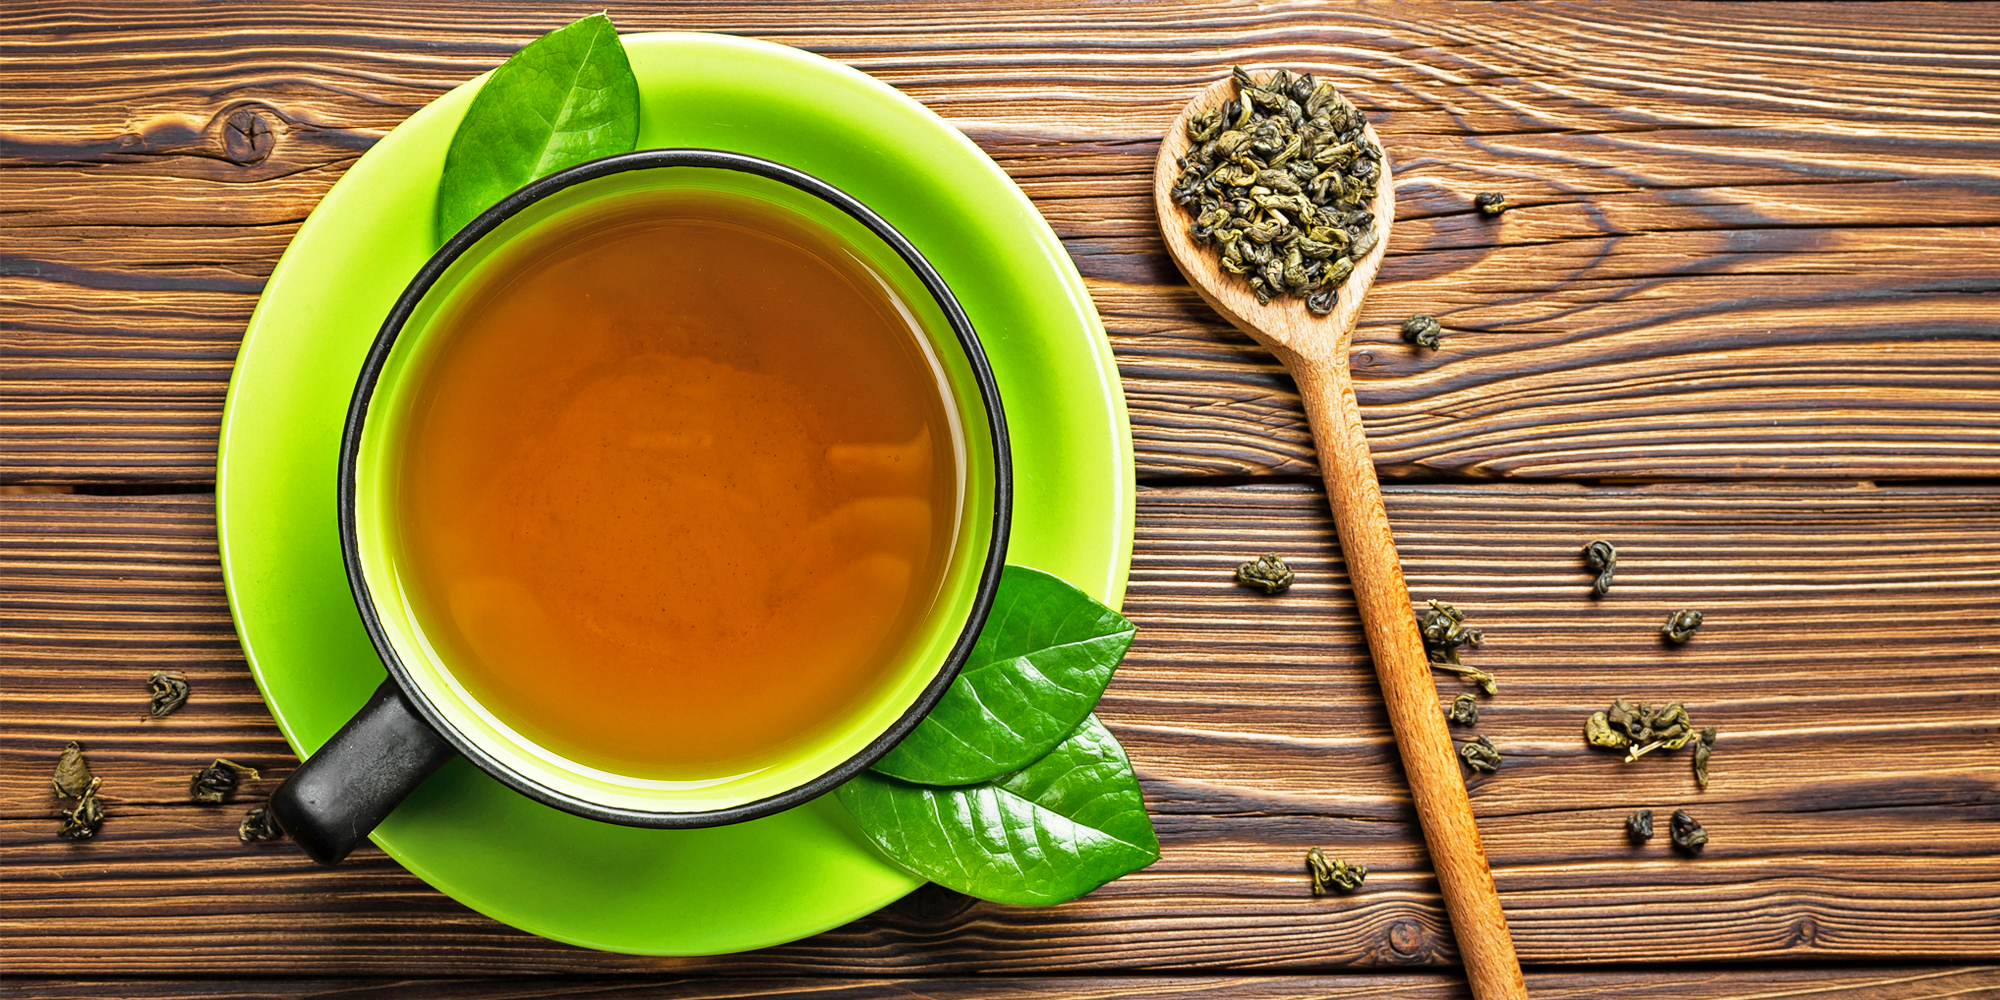 What Are Fat Burning Teas, and Can They Help You Lose Weight?